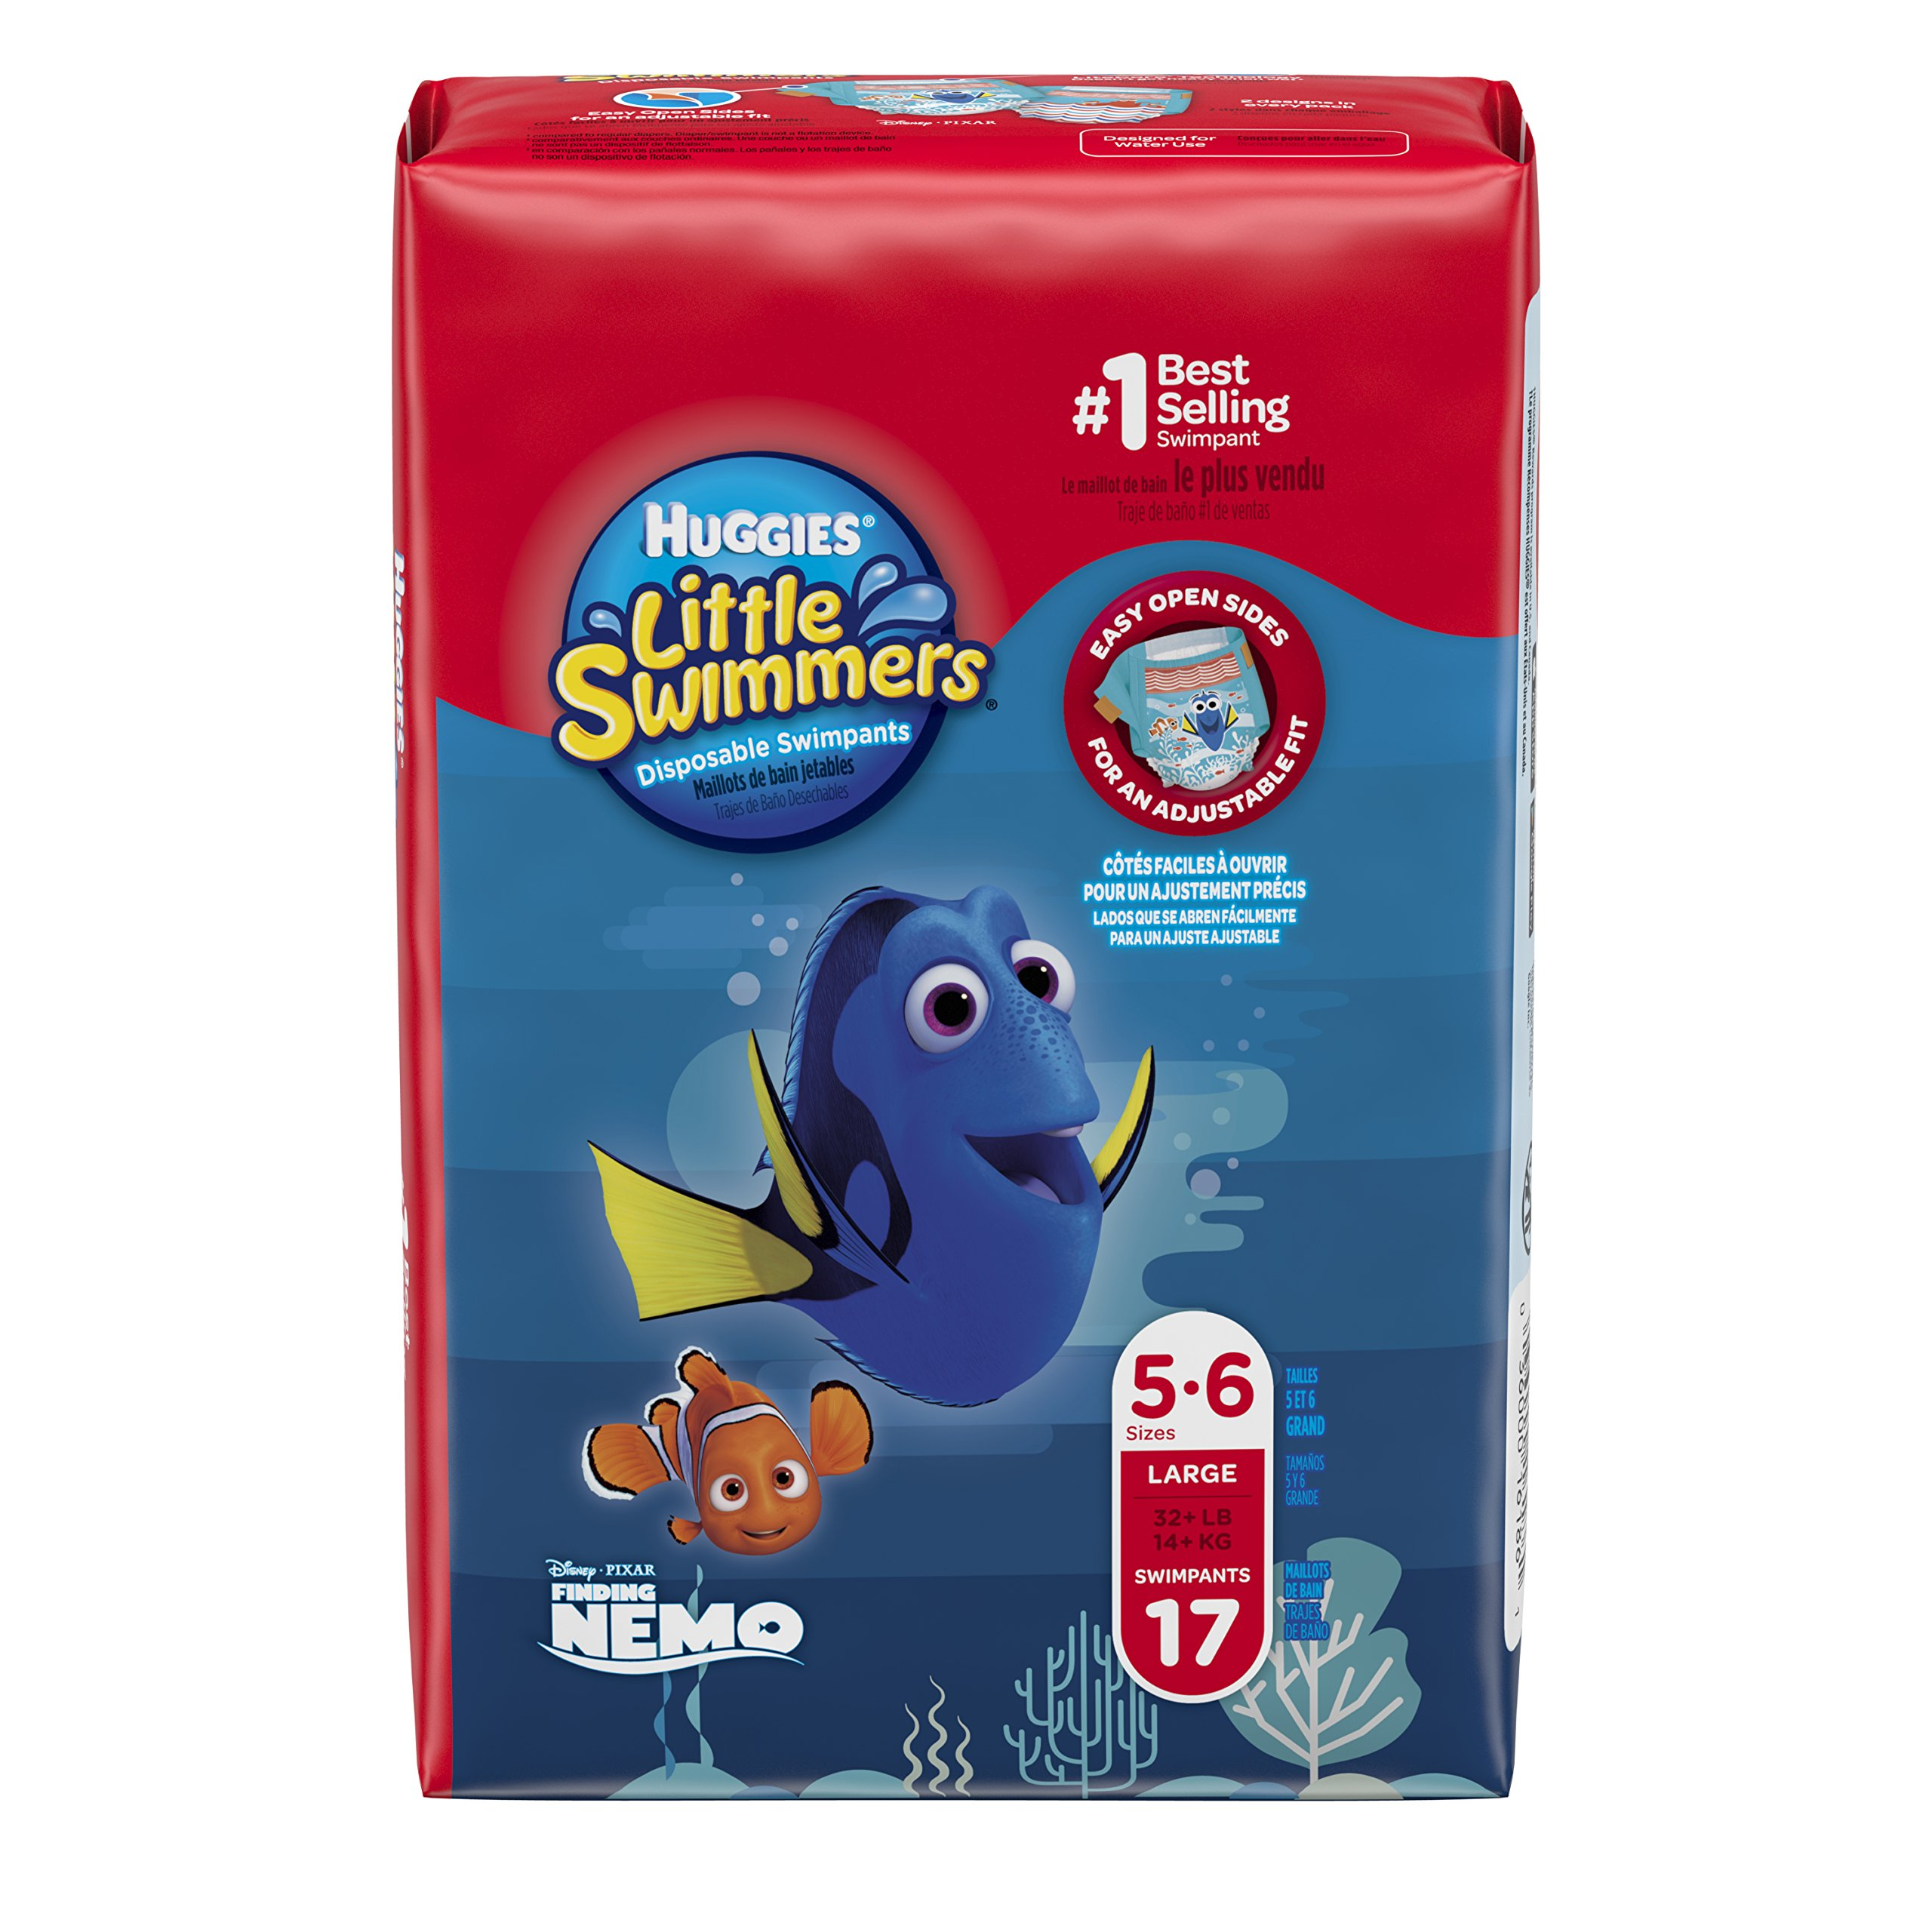 Huggies Little Swimmers Disposable Swim Diapers, Swimpants, Size 5-6 Large (over